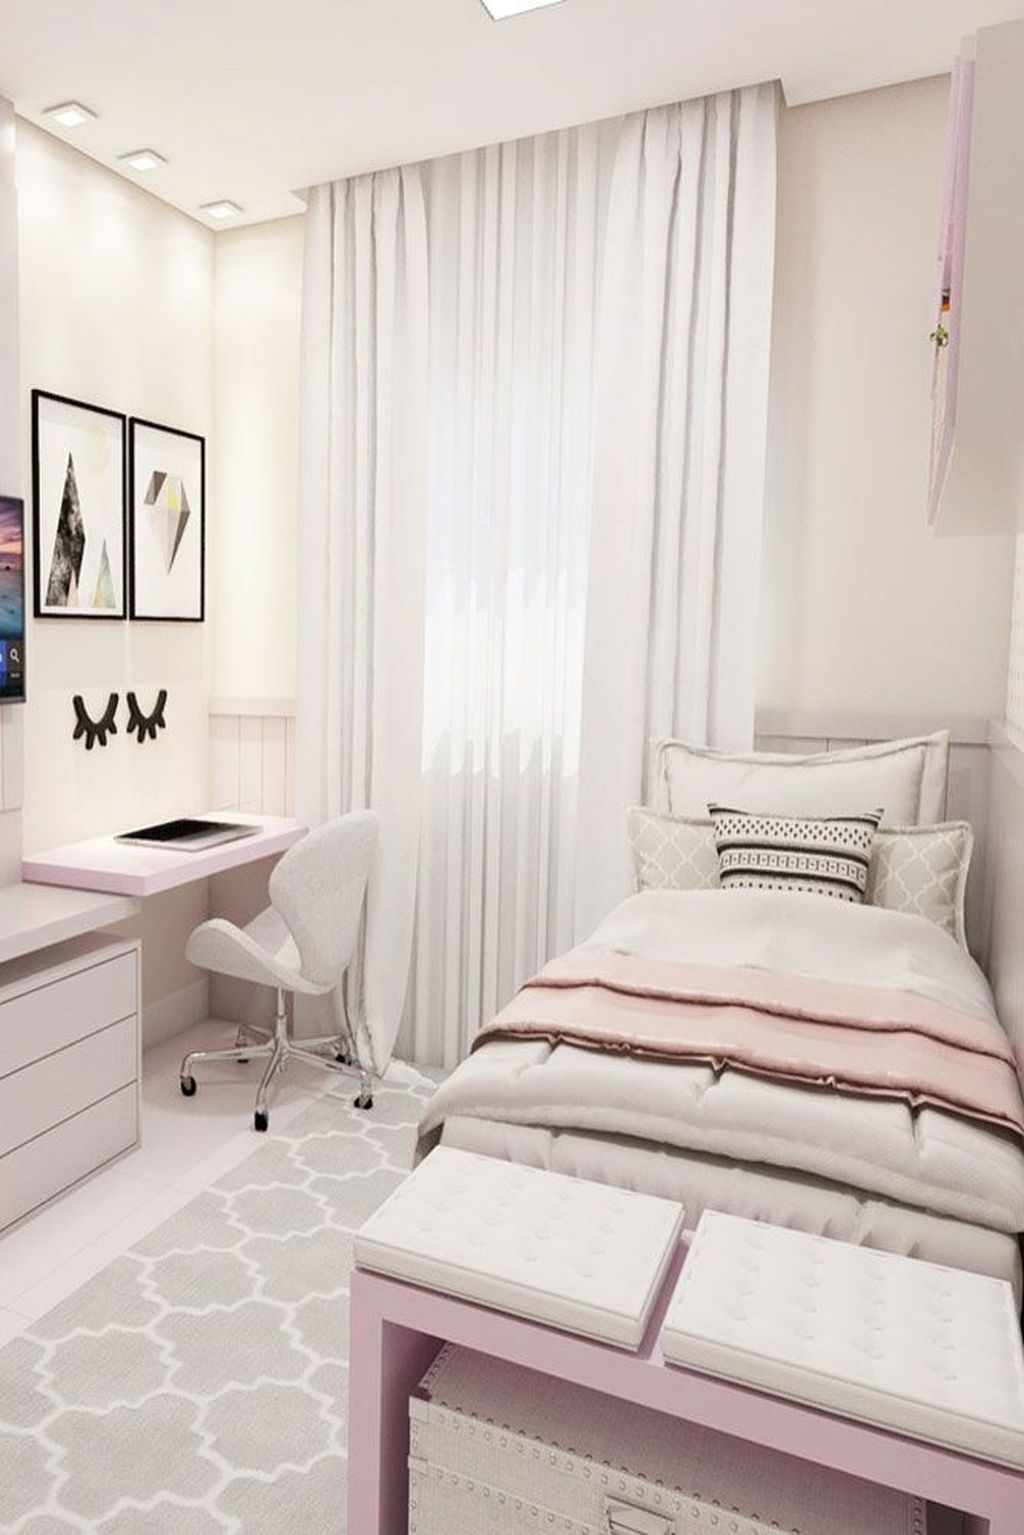 27 Small Bedroom Ideas Design Minimalist And Simple With Images